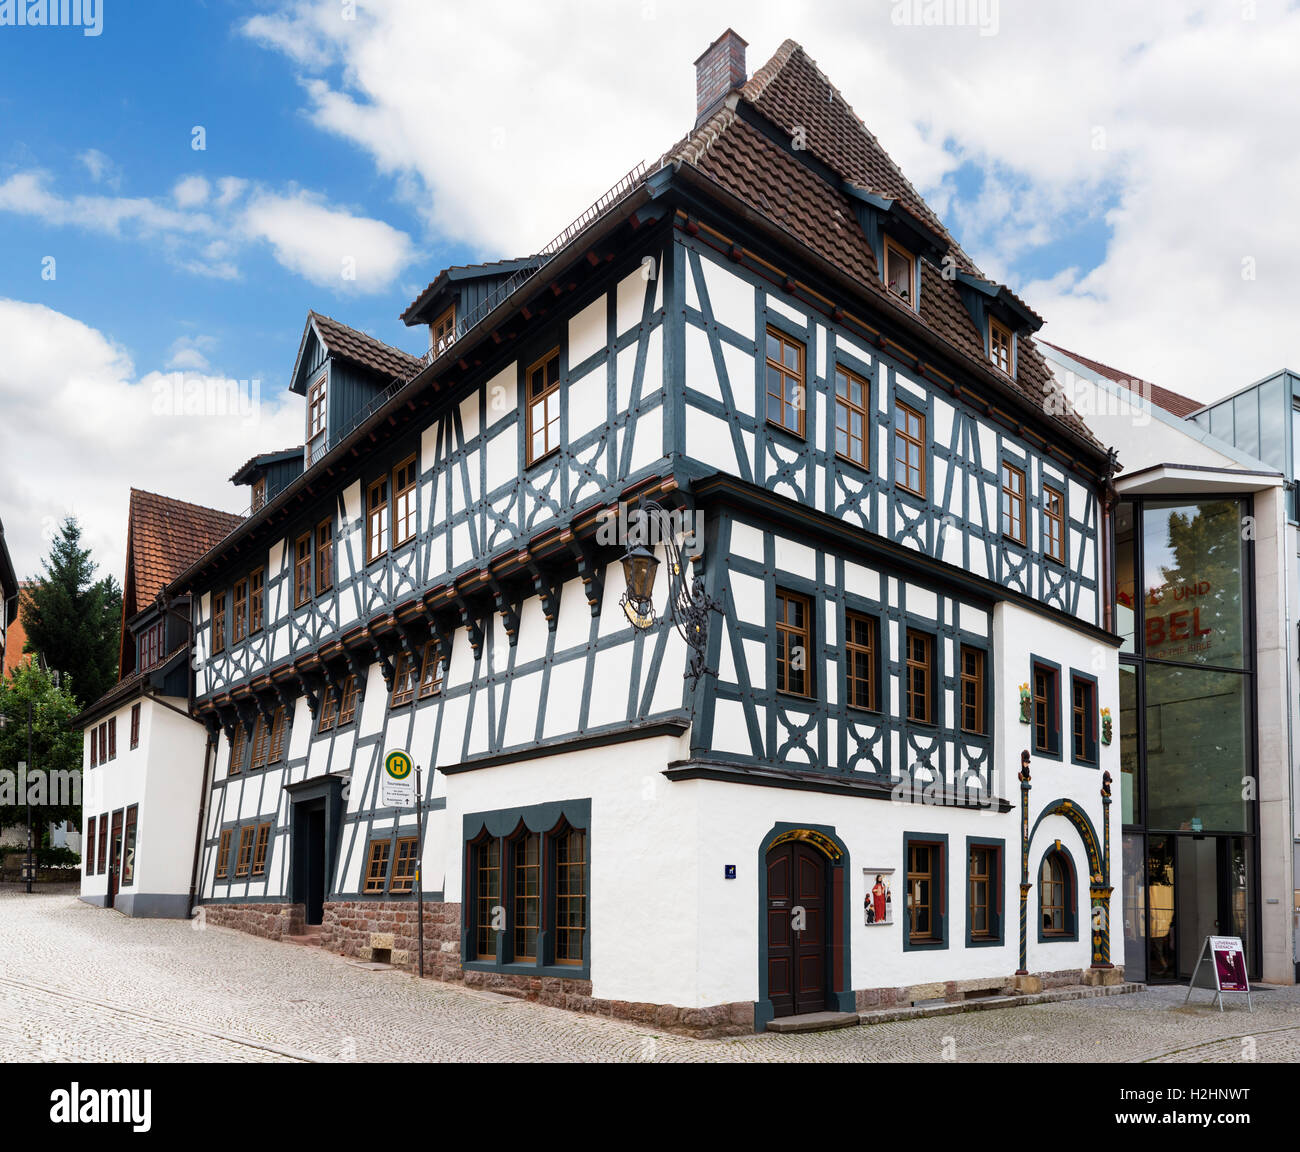 The Luther House in Eisenach, Thuringia, Germany - Stock Image